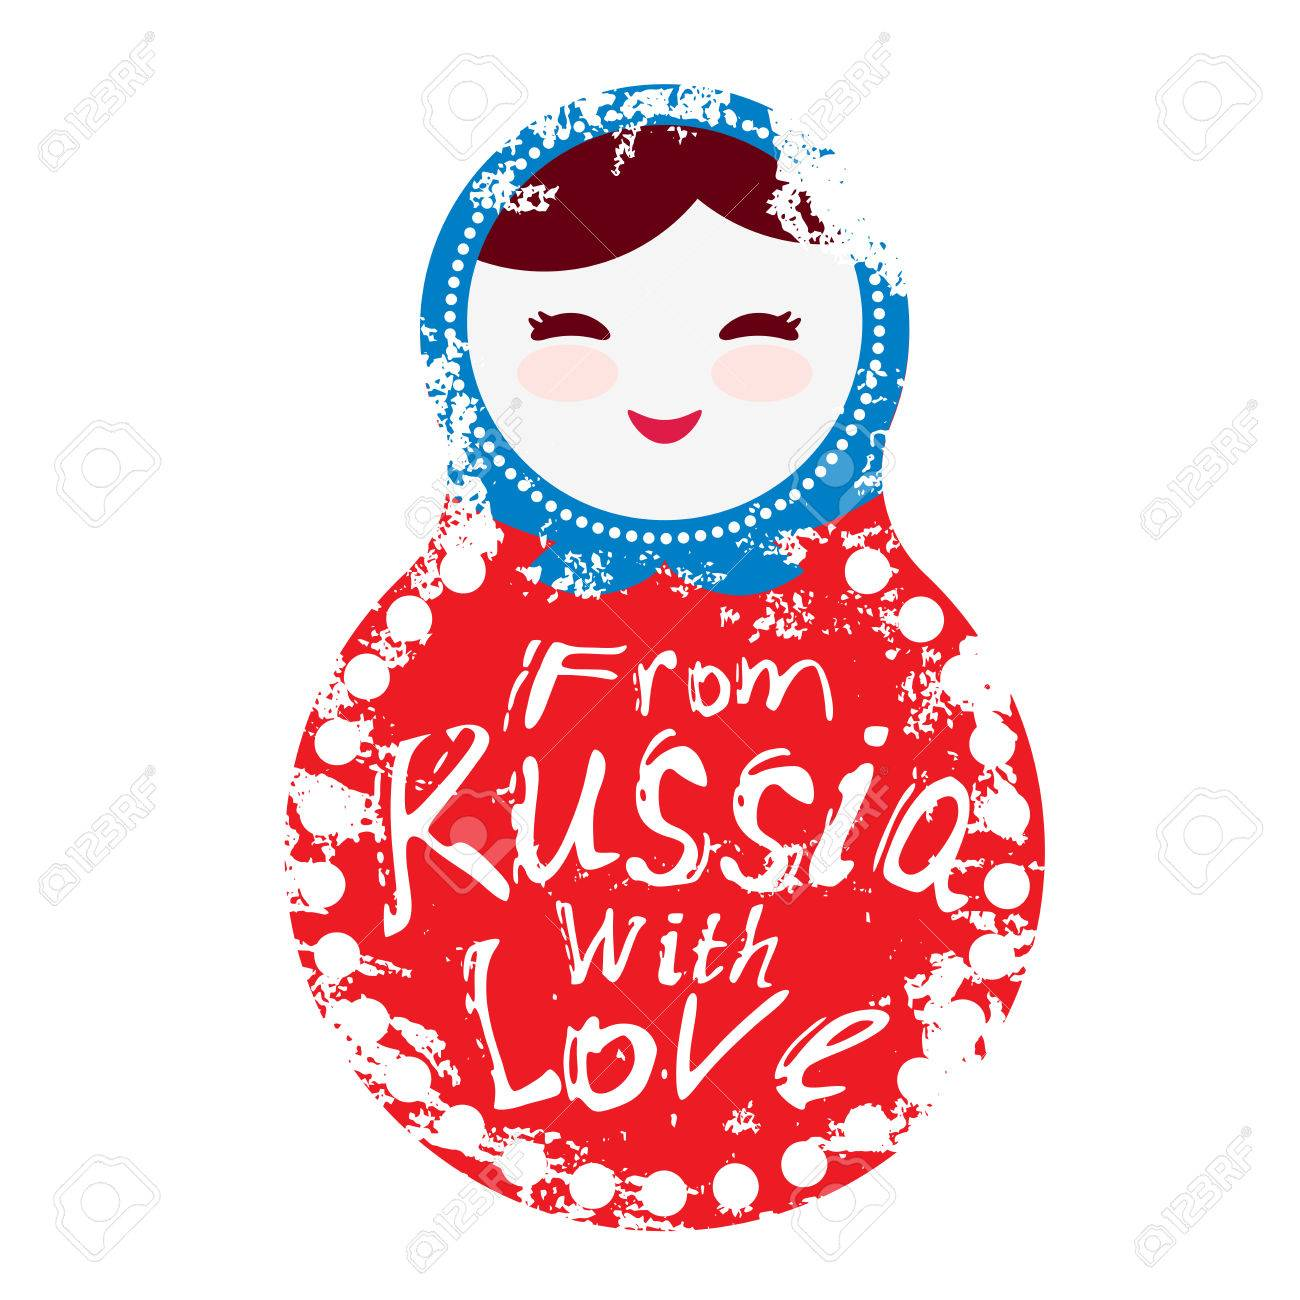 From Russia With Love Russian Dolls Matryoshka On White Background Red And Blue Colors